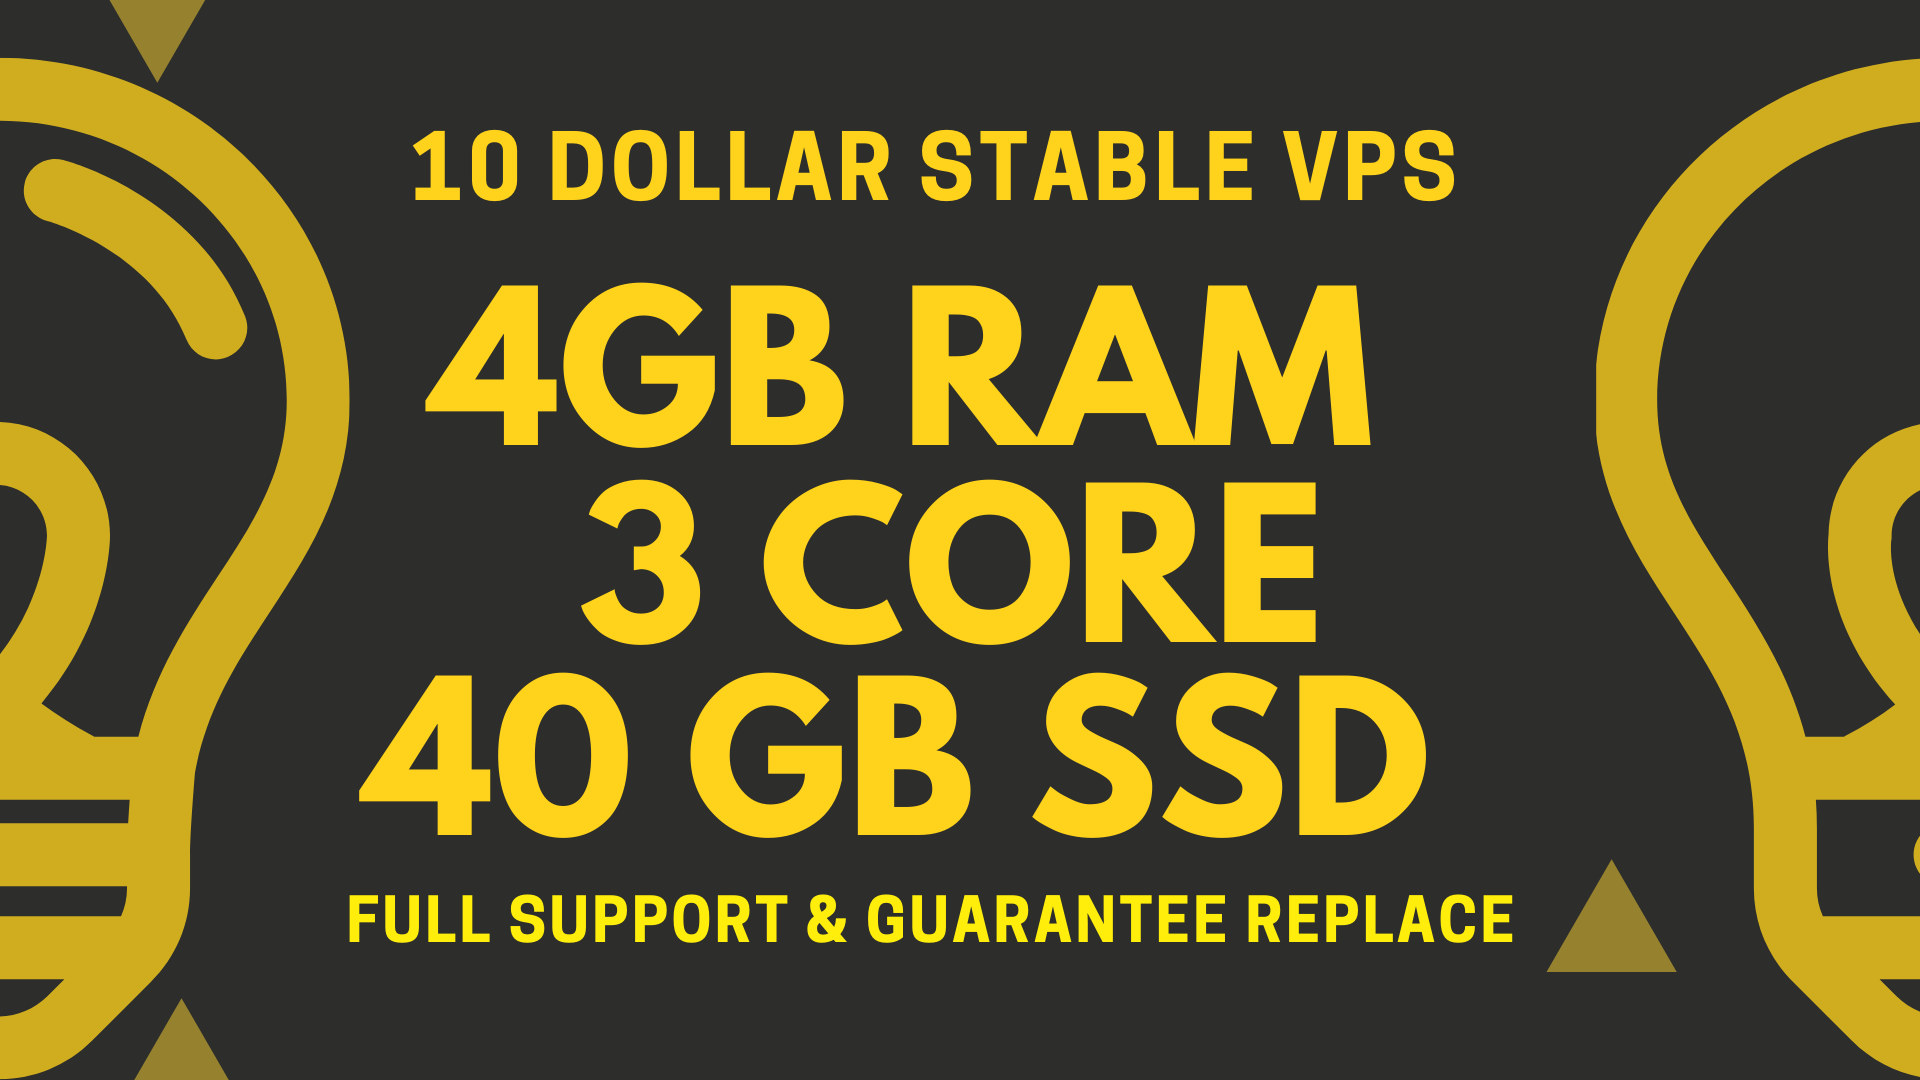 10 DOLLAR STABLE VPS 4GB 3CORE 40GB SSD RENEWABLE